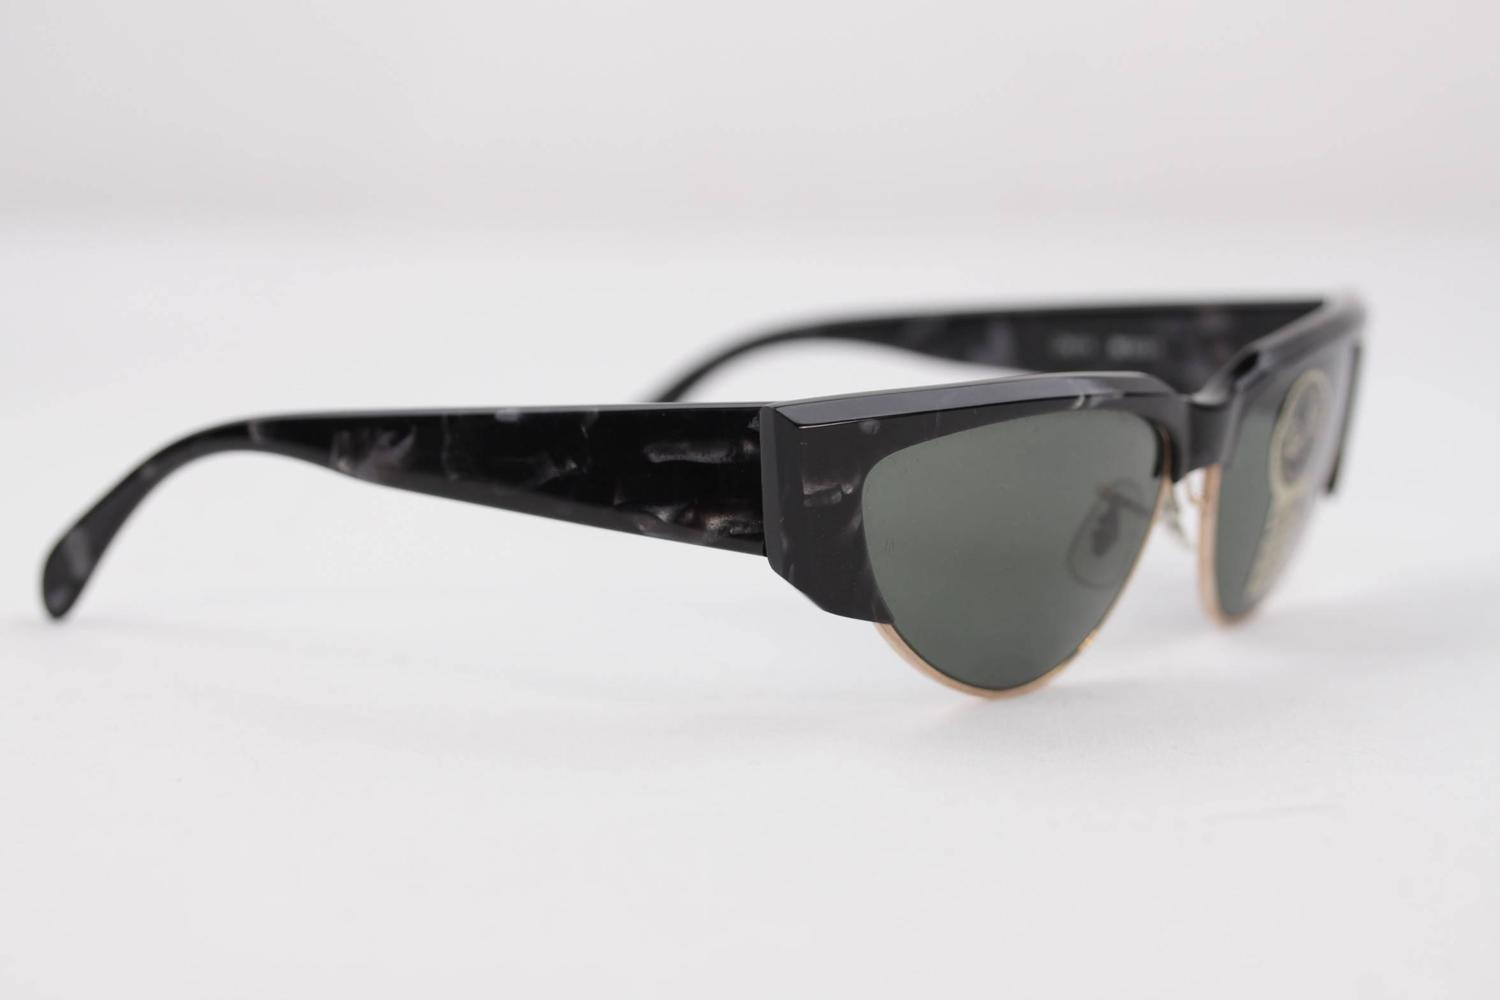 Ray Ban Decal For Glasses | David Simchi-Levi